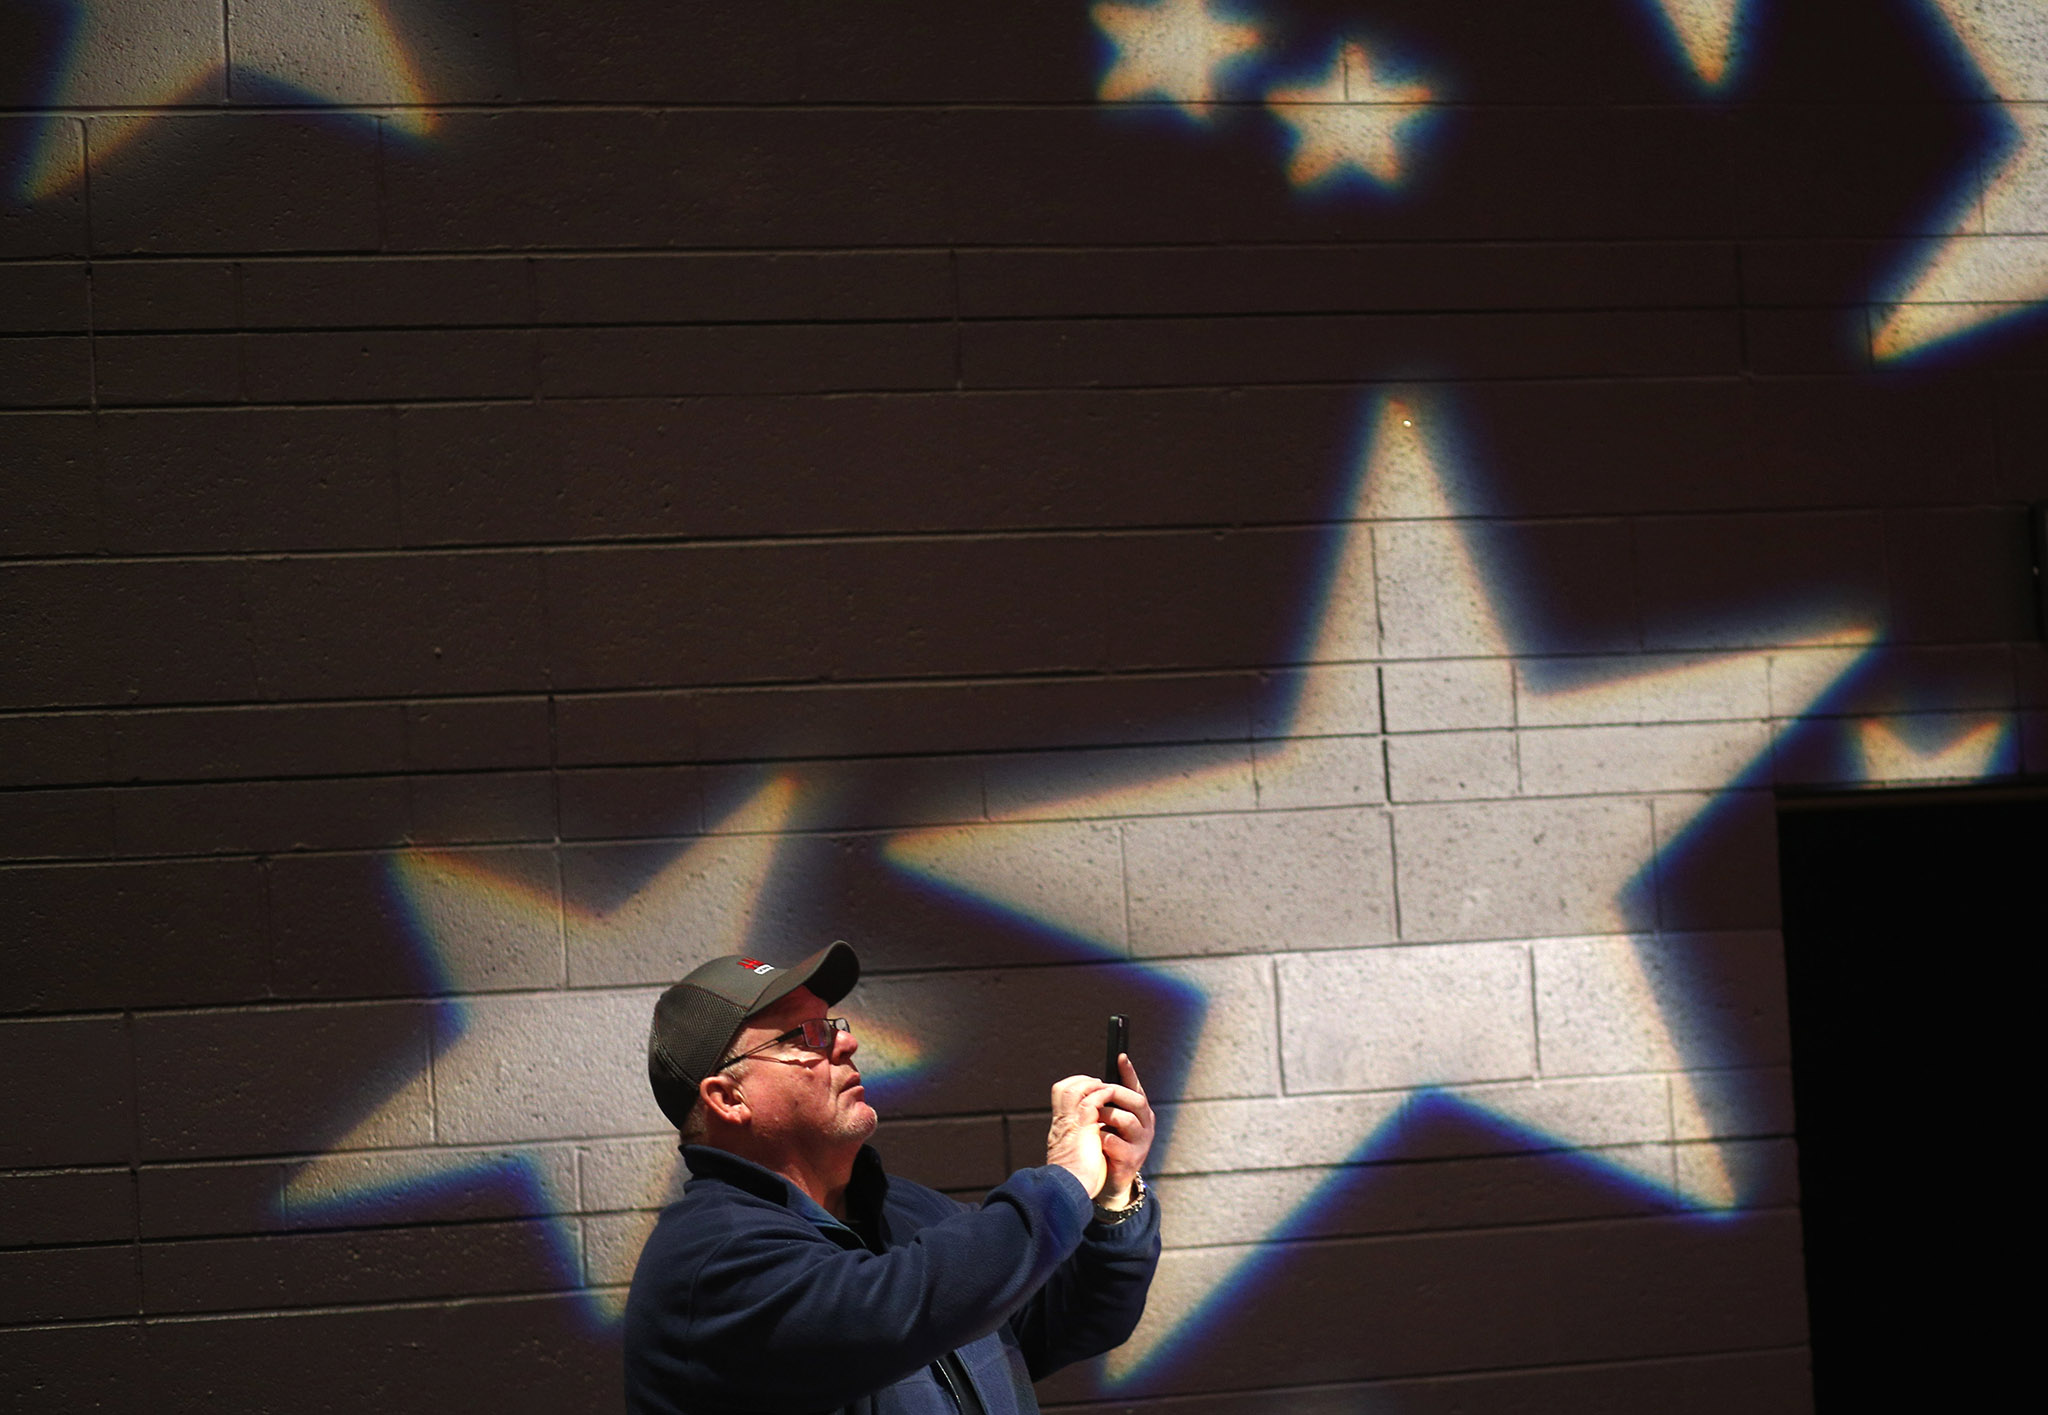 A man takes a photograph of the stage before a campaign event featuring Republican presidential candidate Donald Trump at St. Norbert College in De Pere, Wisconsin, USA